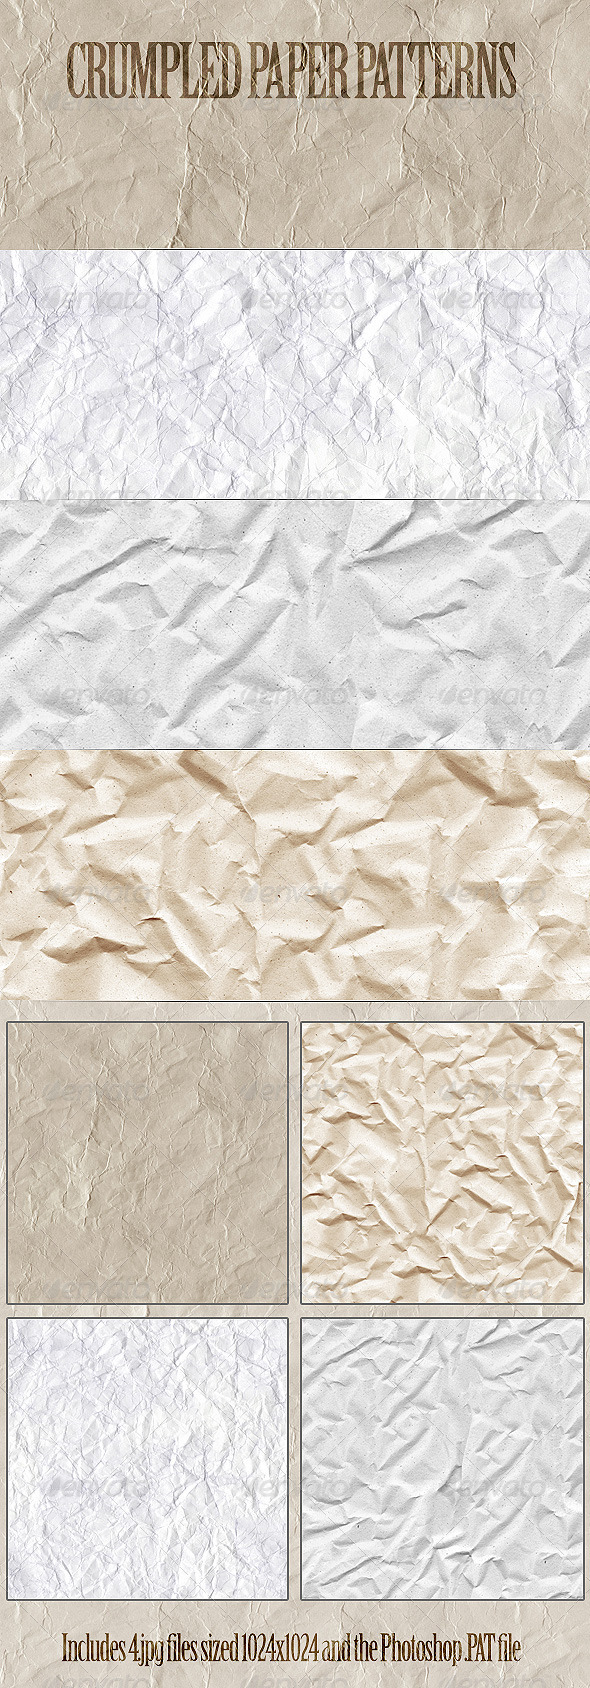 Crumpled Paper Patterns - Artistic Textures / Fills / Patterns